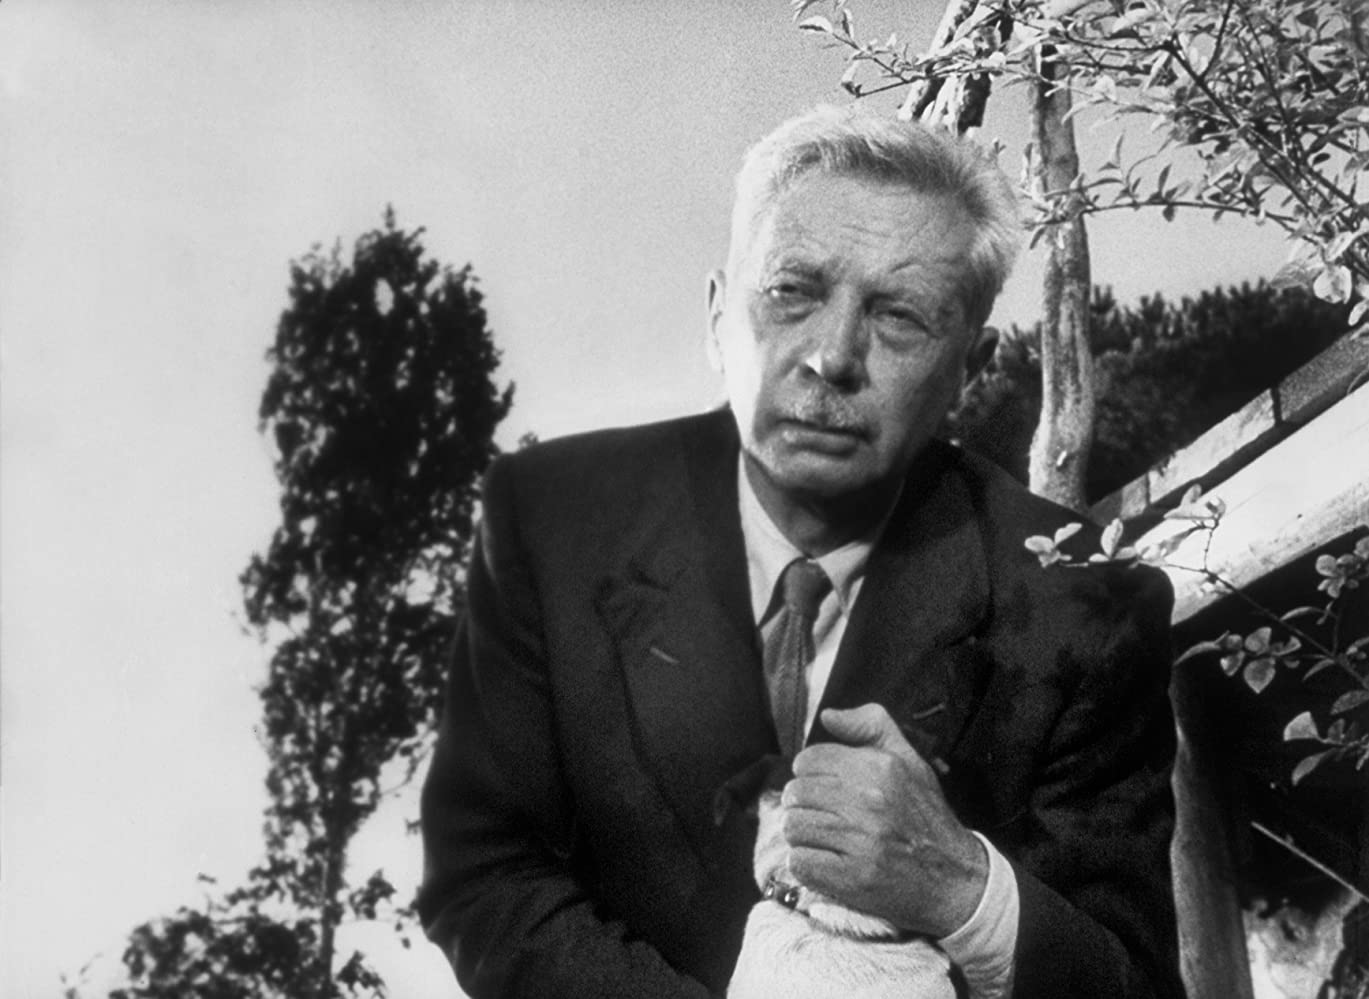 Carlo Battisti in Umberto D. (1952)